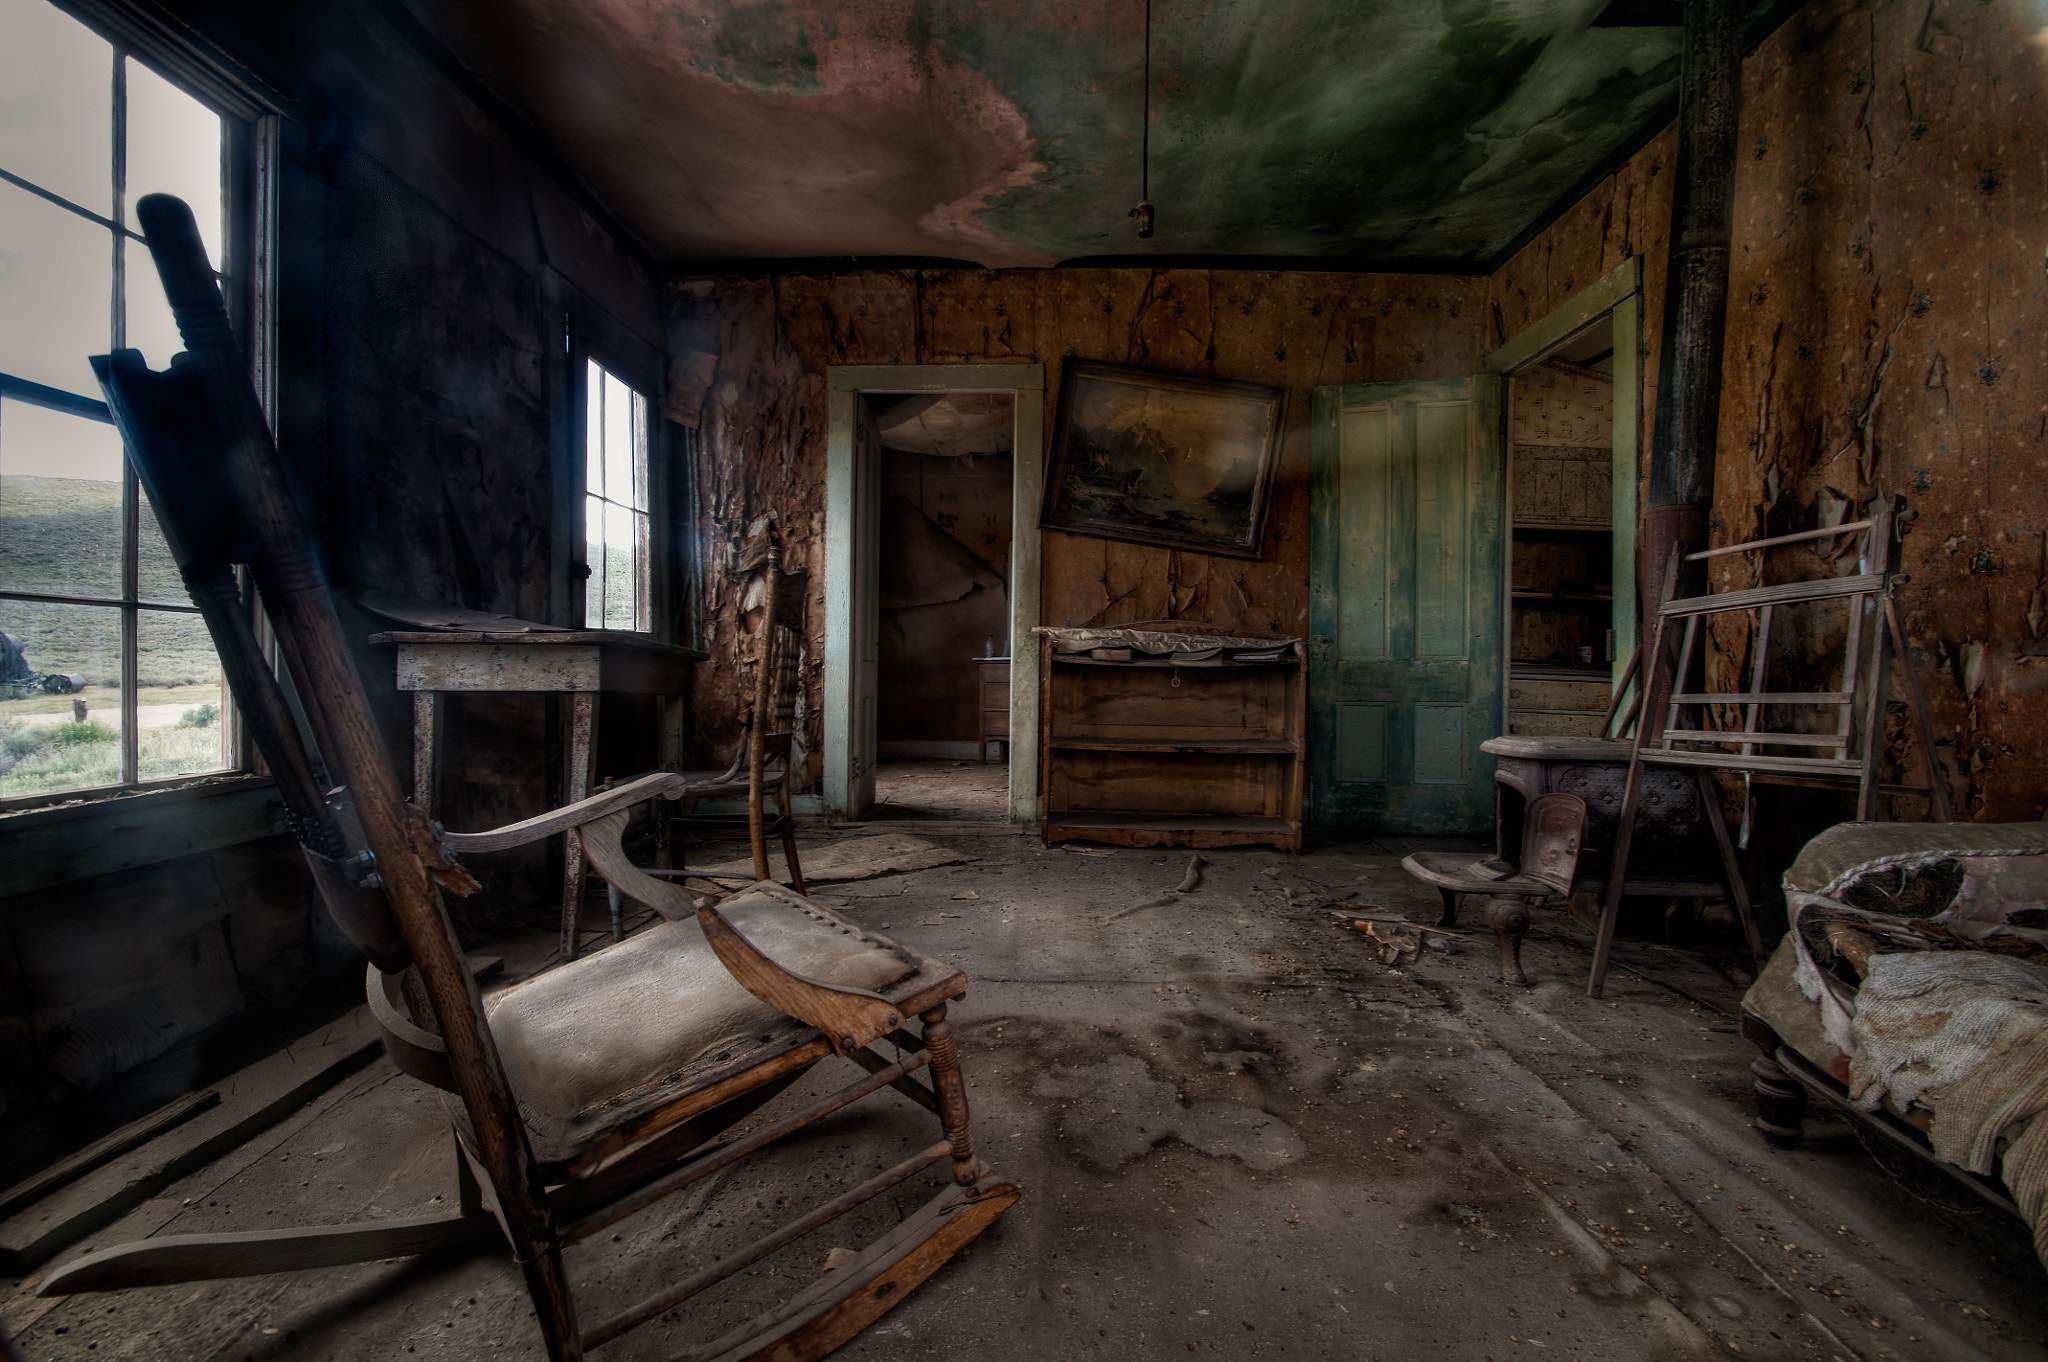 Photograph Inside Bodie, CA by Eric Wienke on 500px